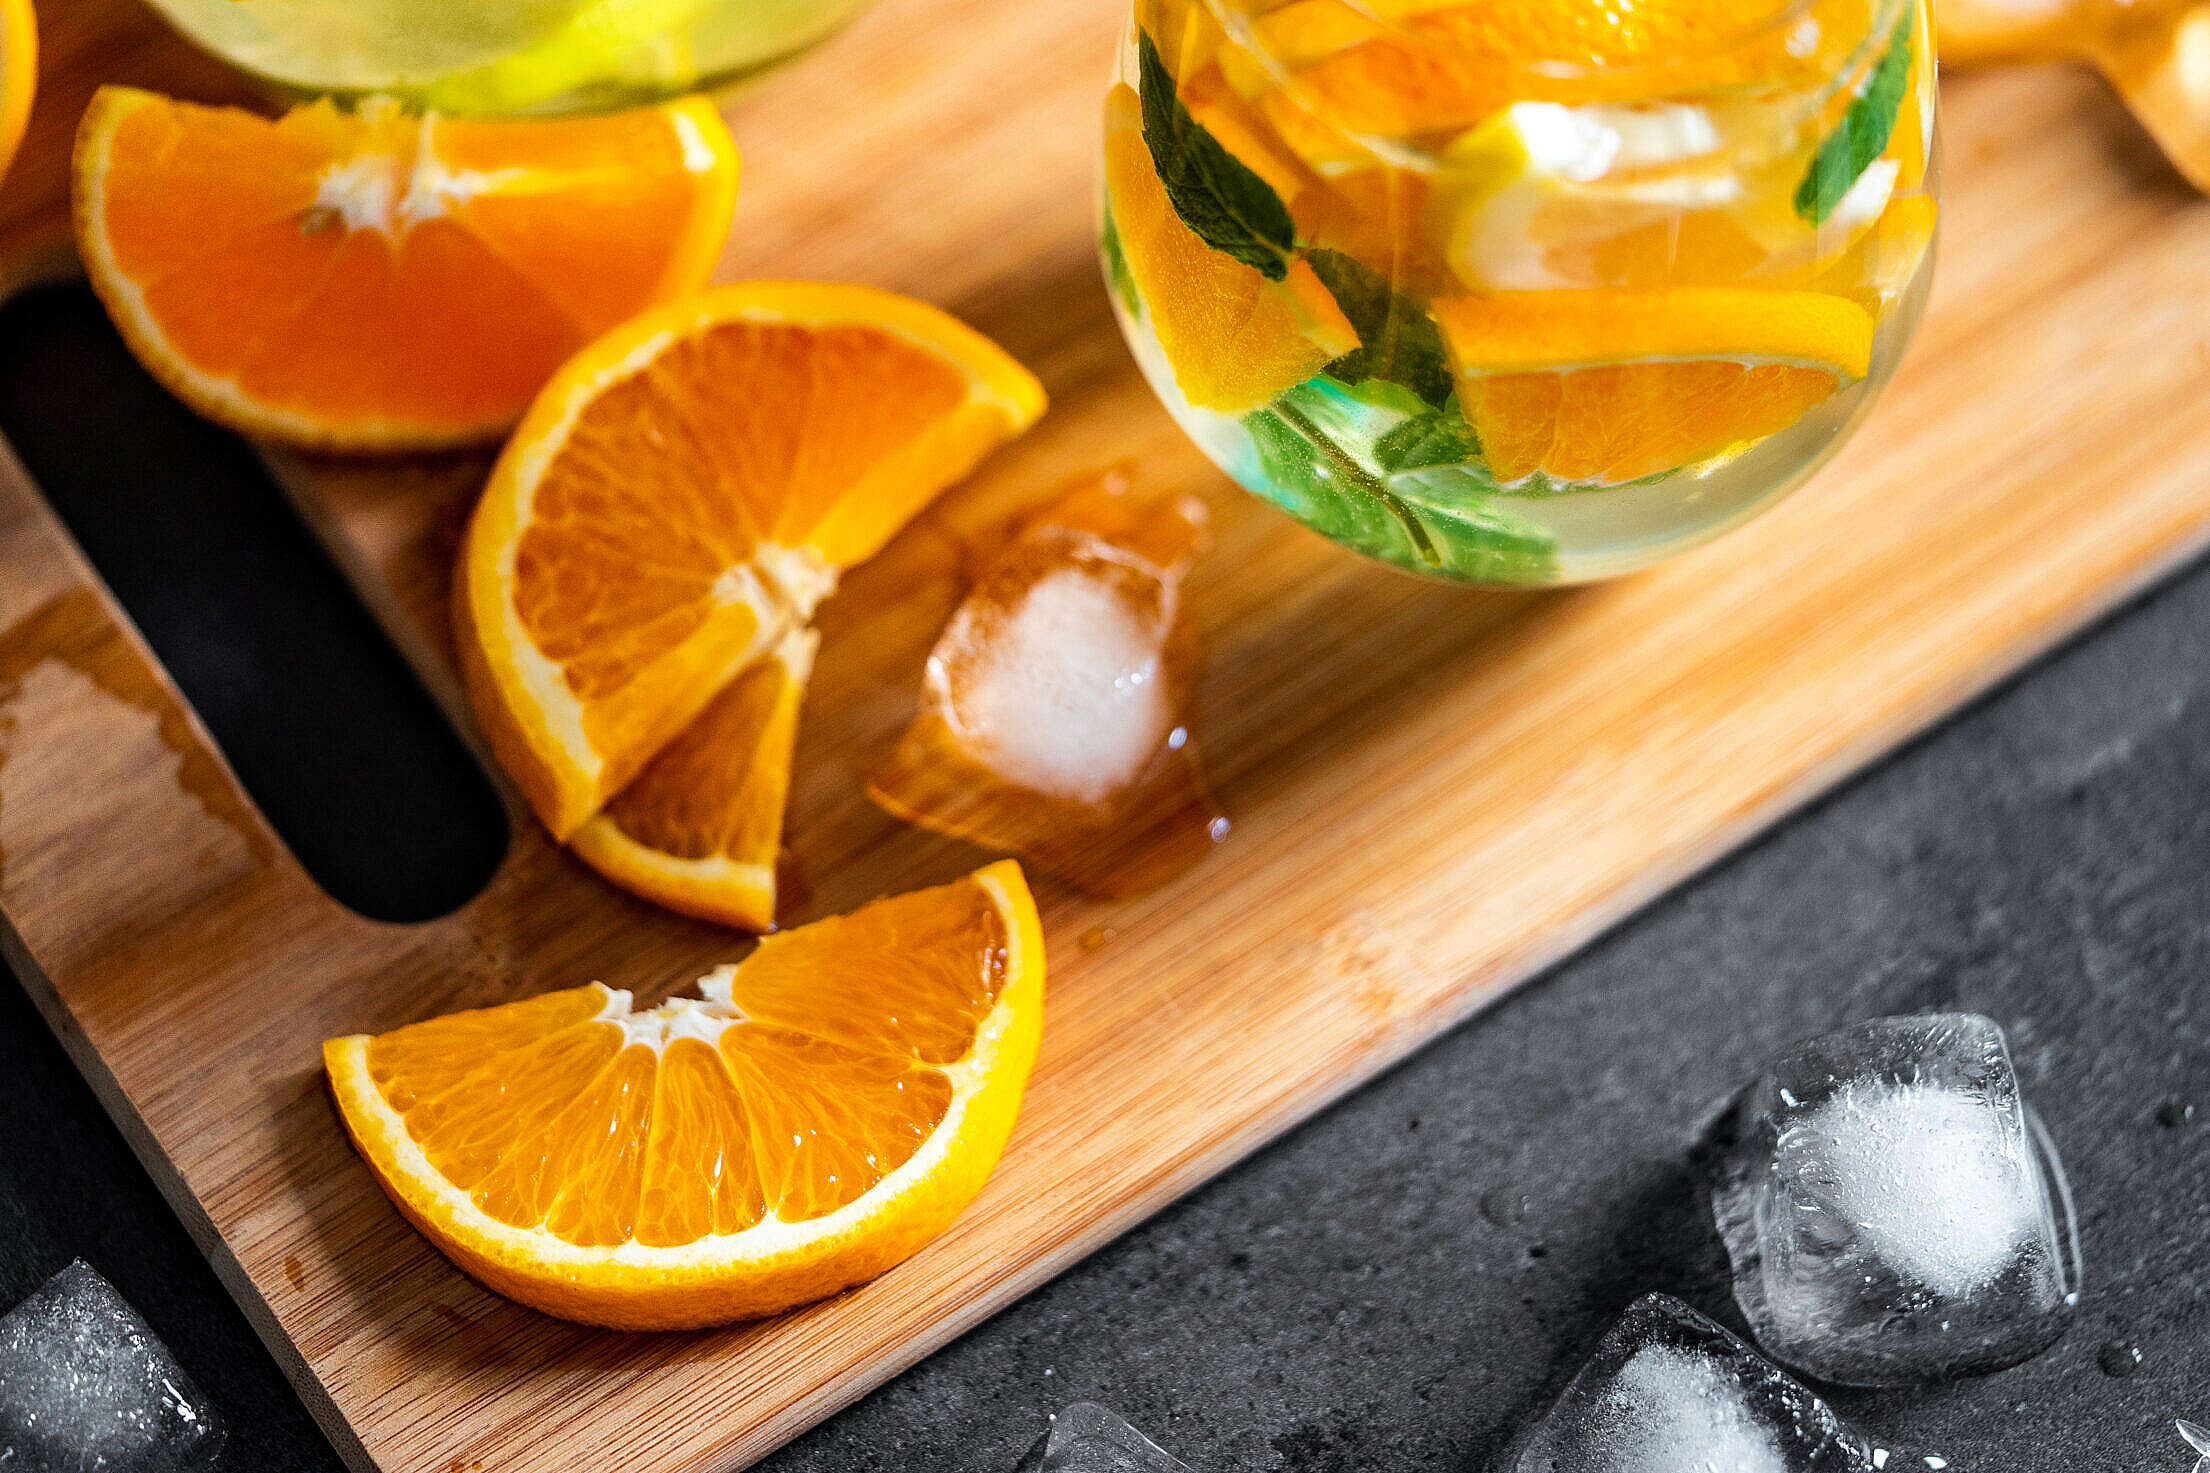 Sliced Orange for a Summer Drink Free Stock Photo